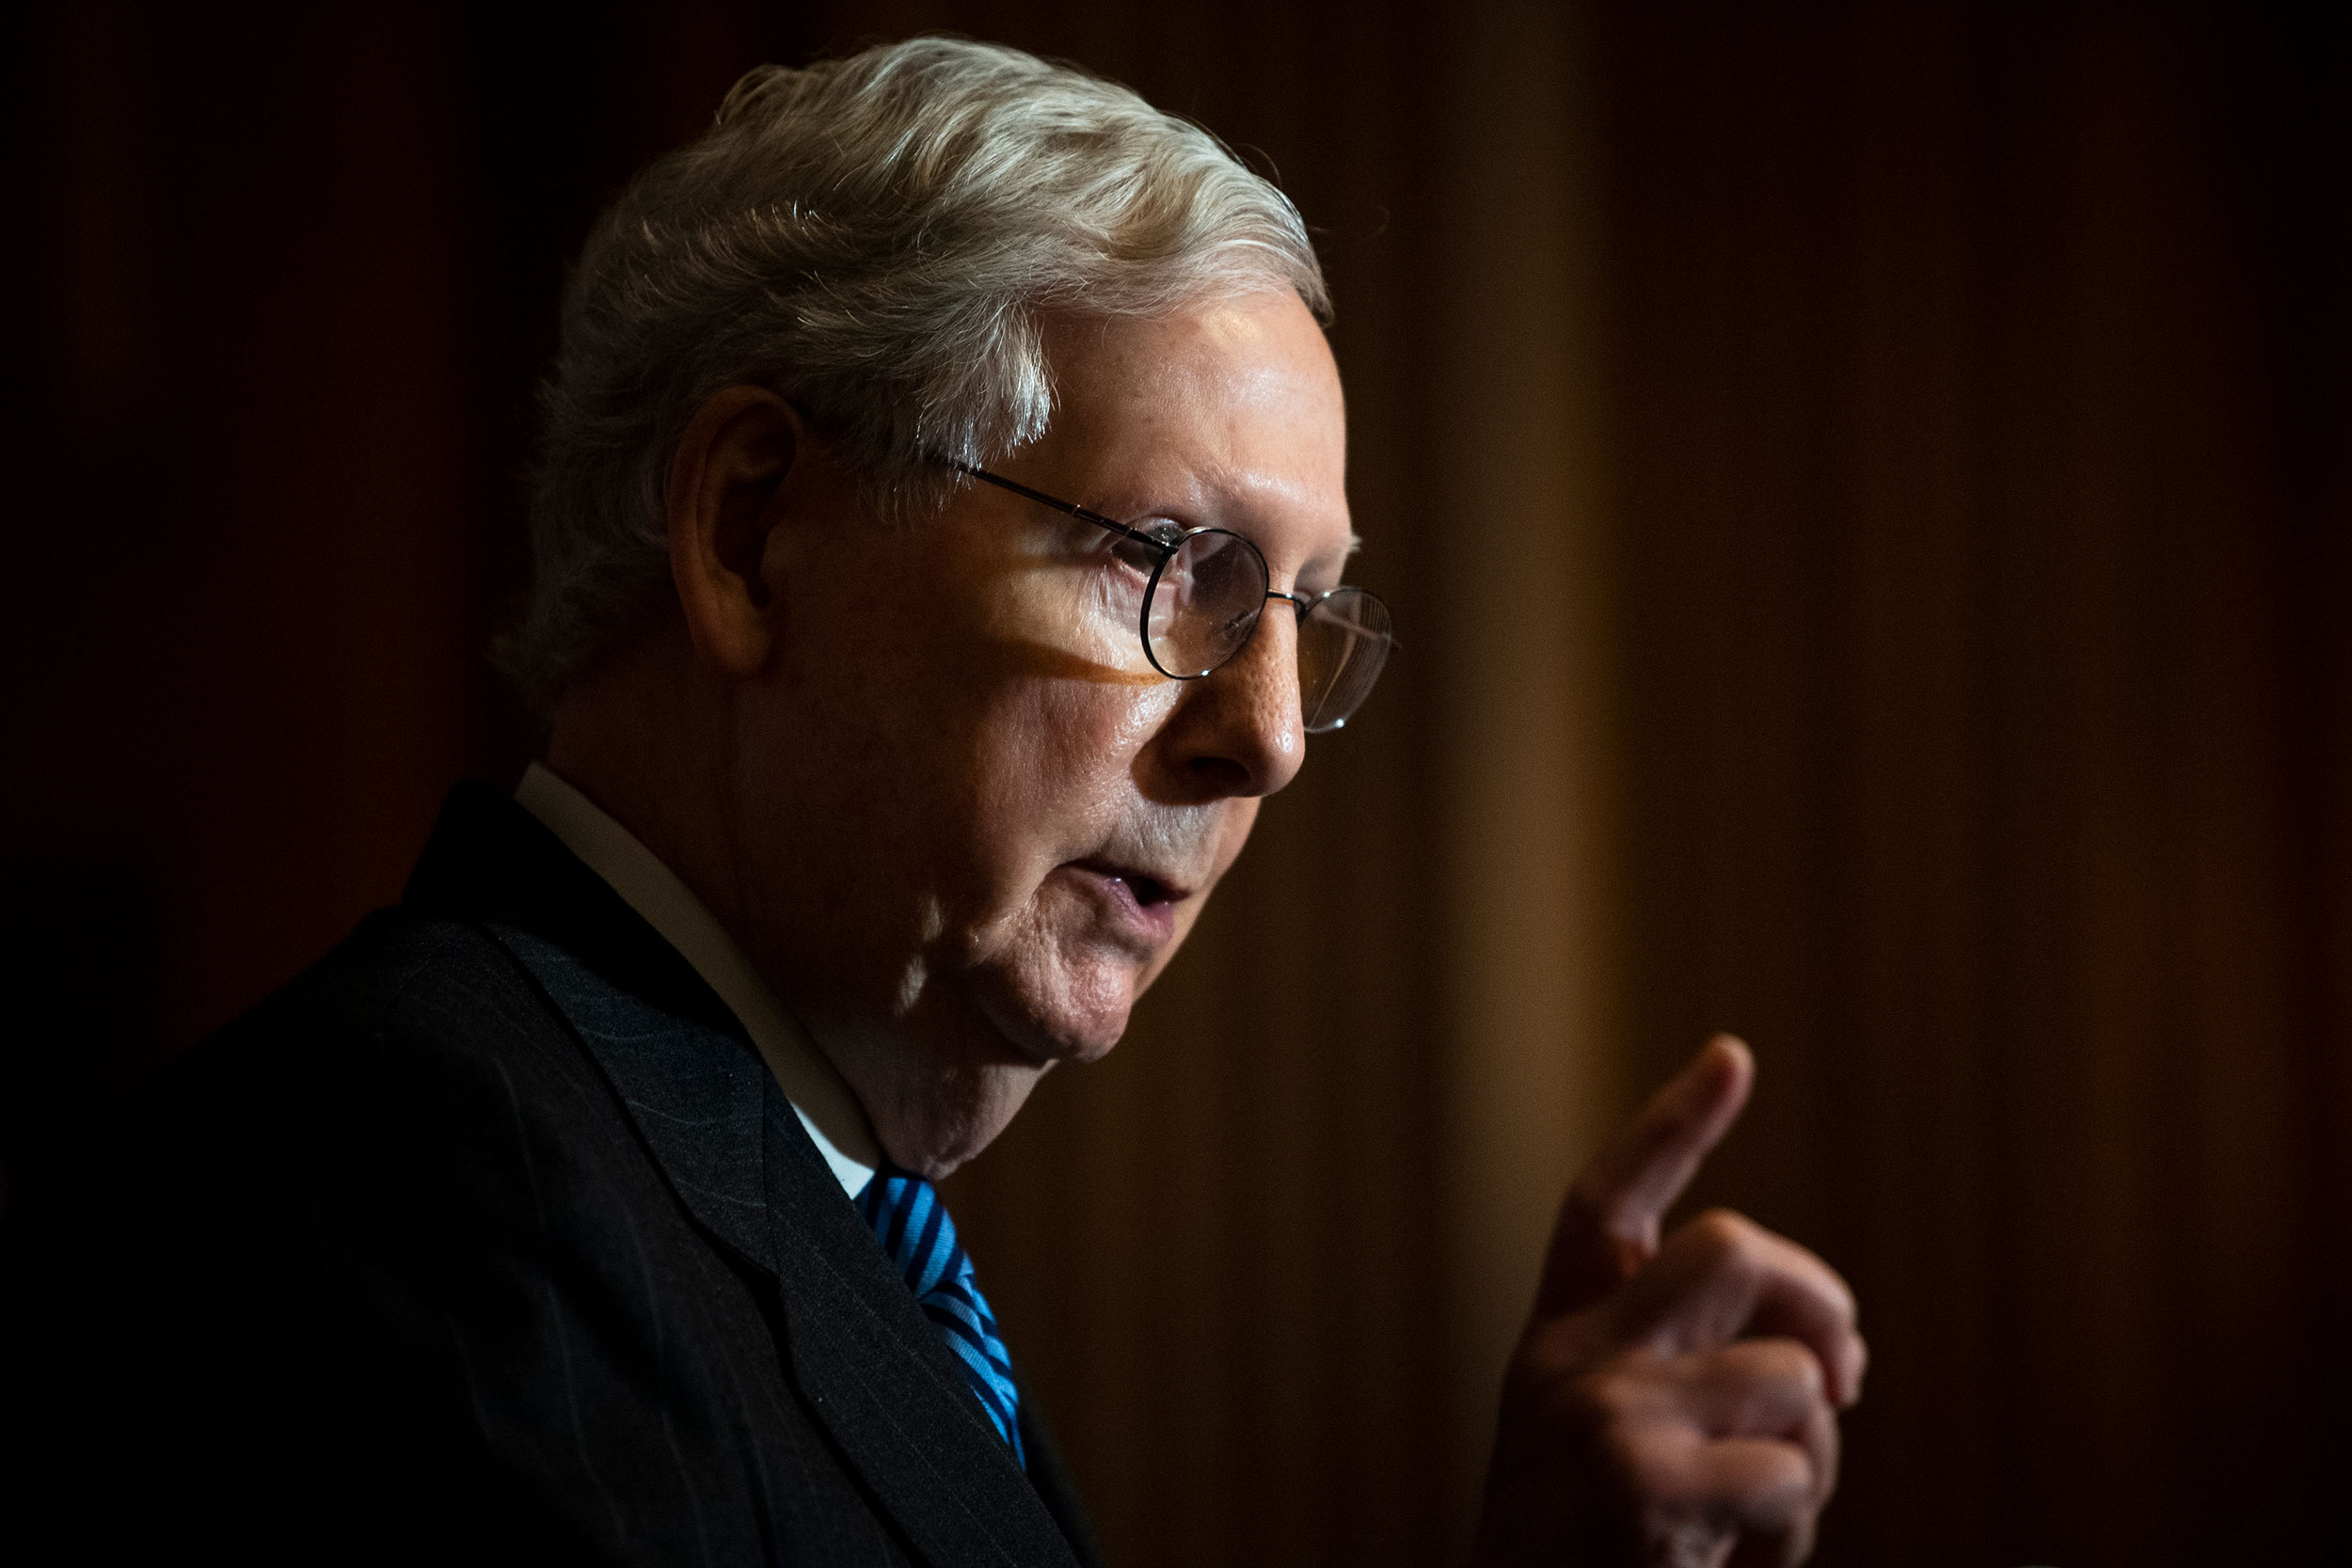 Senate Majority Leader Mitch McConnell speaks at a news conference in Washington, DC, on December 15.